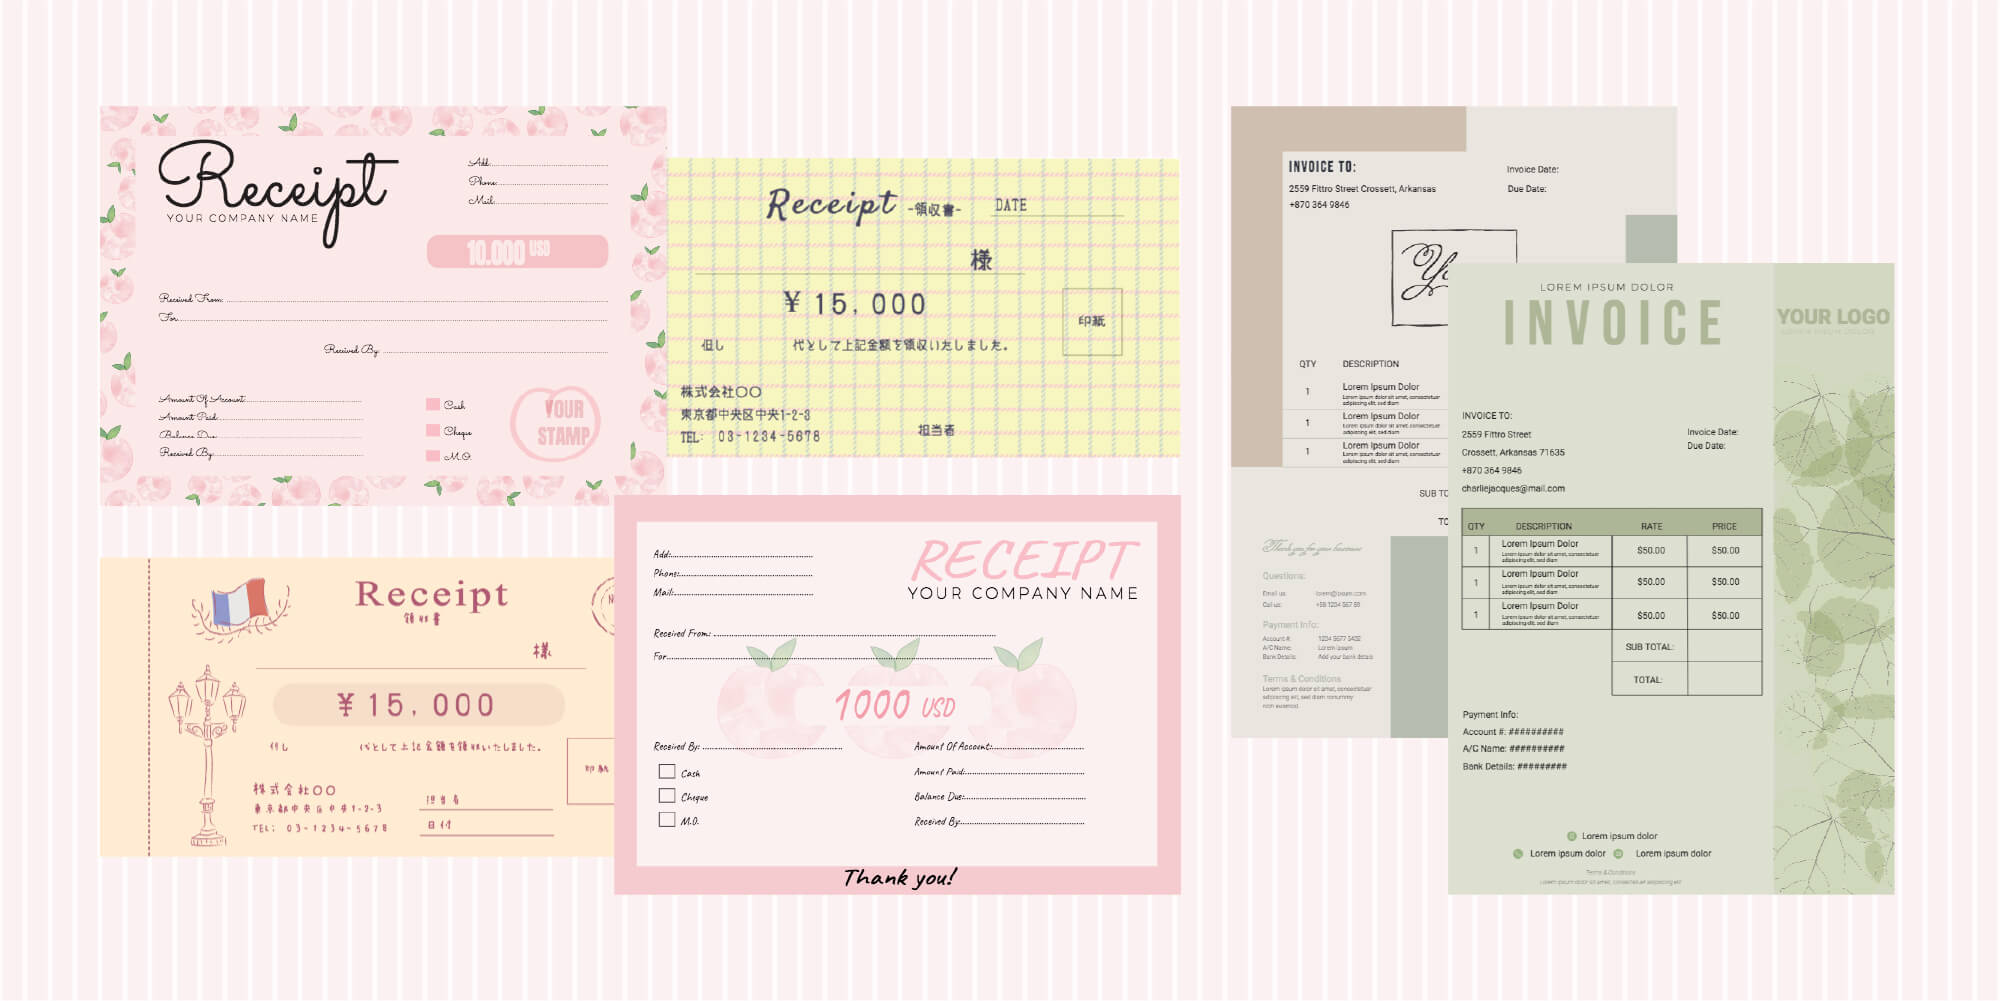 receipt and invoice templates